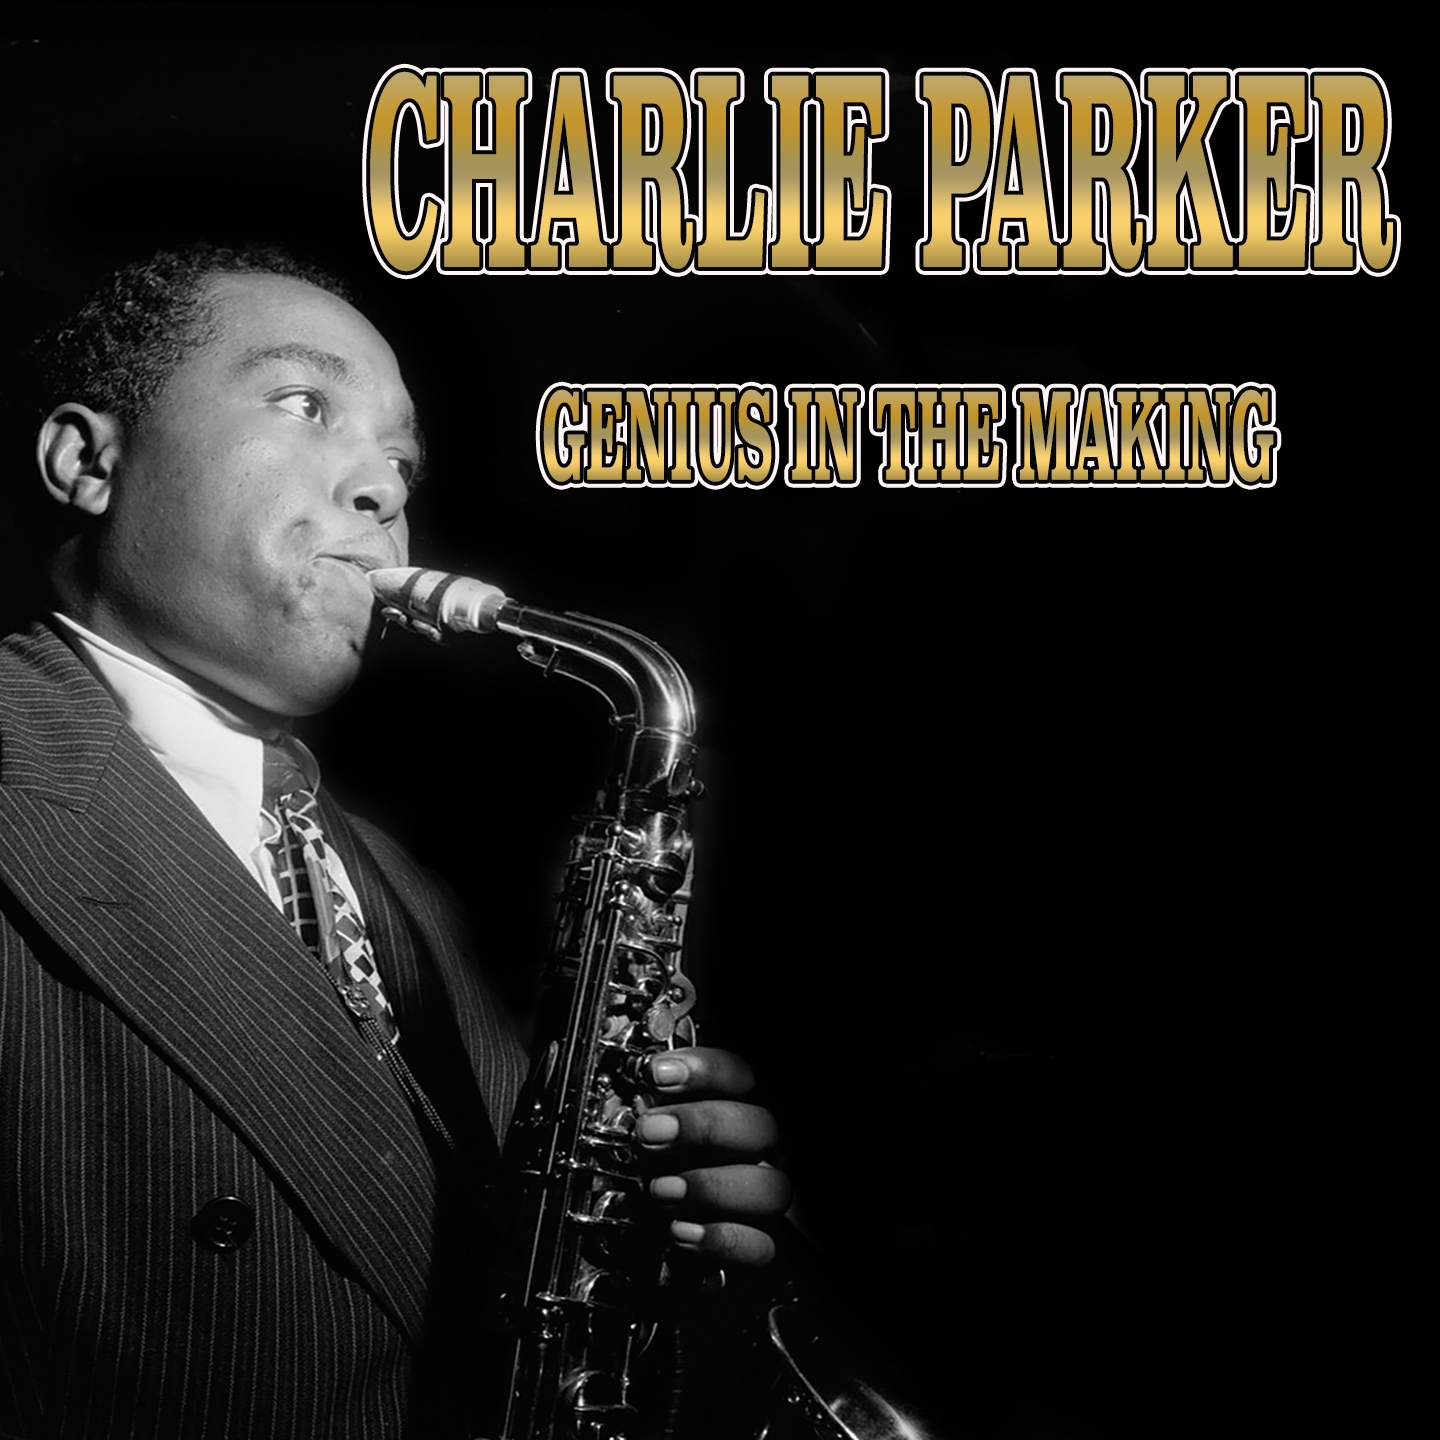 2 - The Best of Charlie Parker's Early Years - Swingmatism, Hootie Blues, Tiny's Tempo, 20th Century Blues, And Other 20 Hits